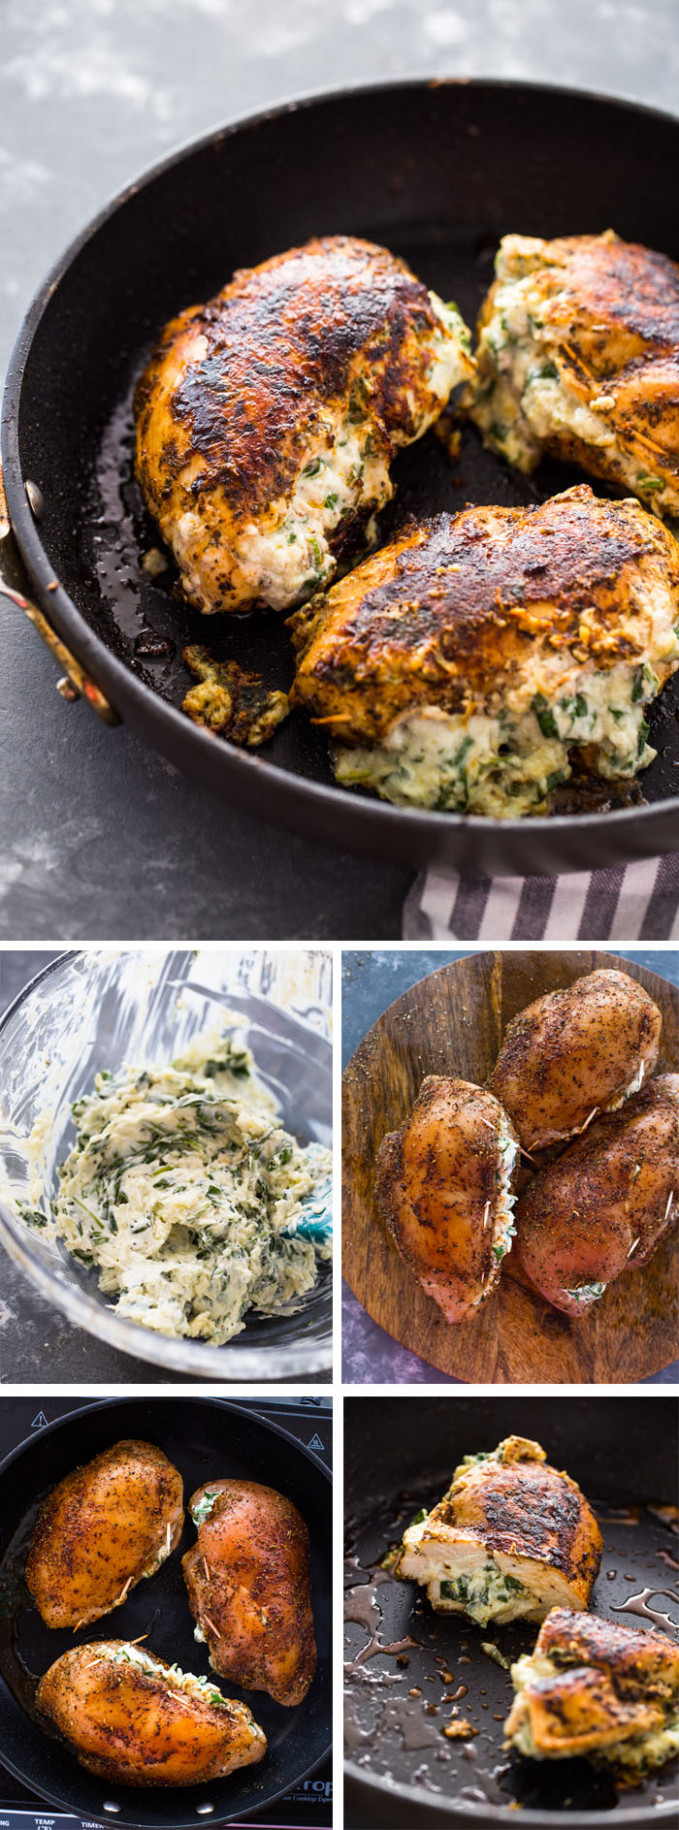 Cream Cheese Spinach Stuffed Chicken (Low-carb, Keto) - chicken recipes using cream cheese